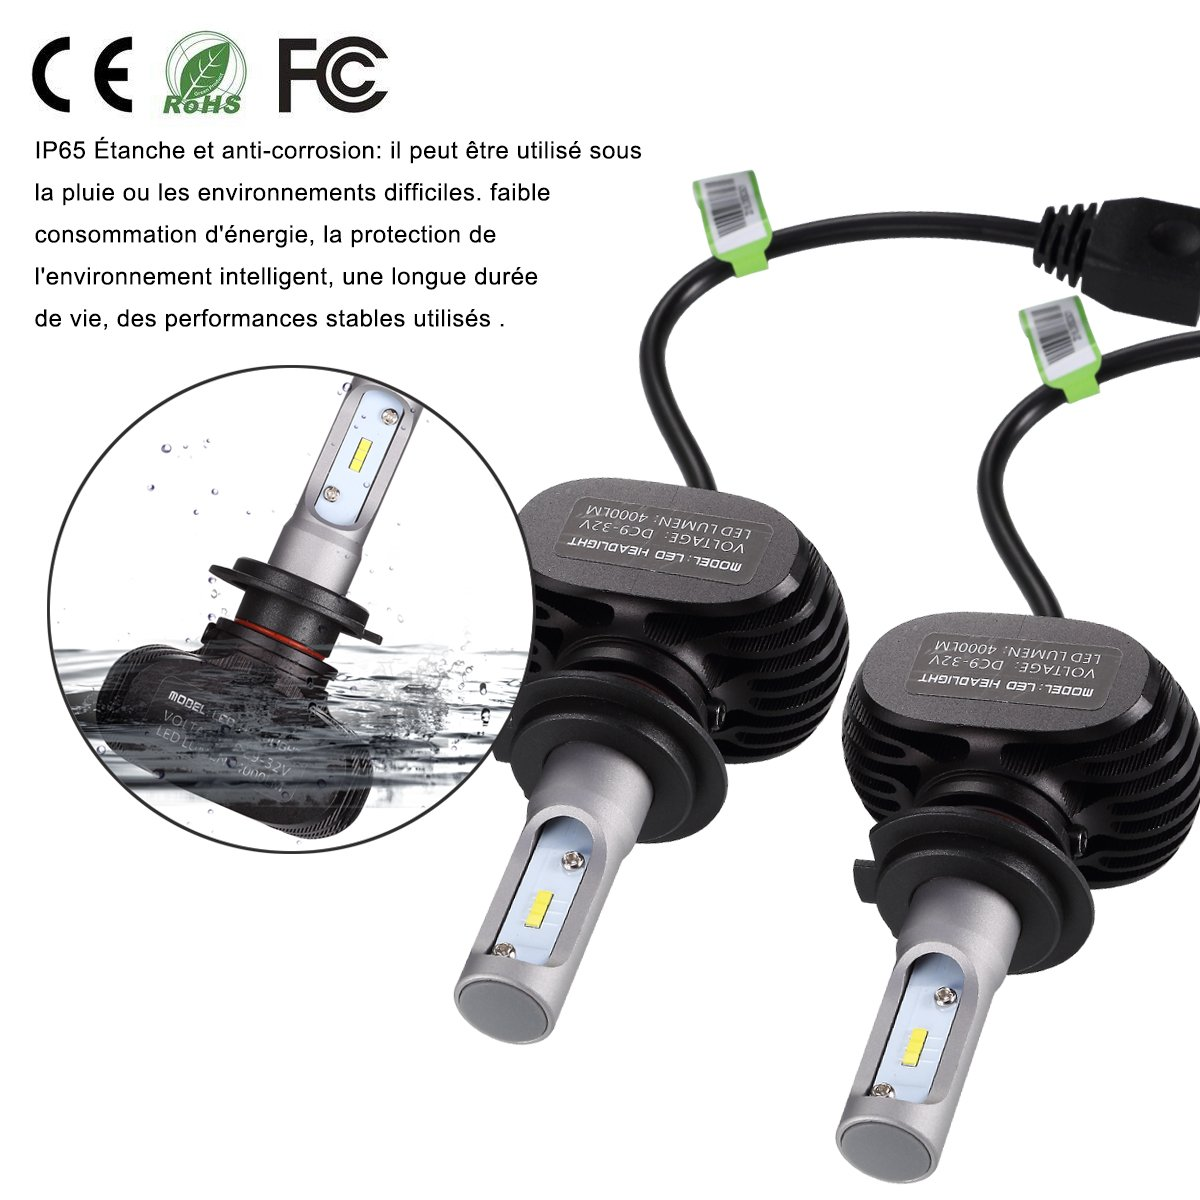 Greenclick 2*H4// H7 Seoul-CSP LED phares Voiture Ampoules Etanche IP65 Car Headlight LED V/éhicule Blanc Pur 6000-6500K Tout-en-un kit de conversion. H4, S1 plus